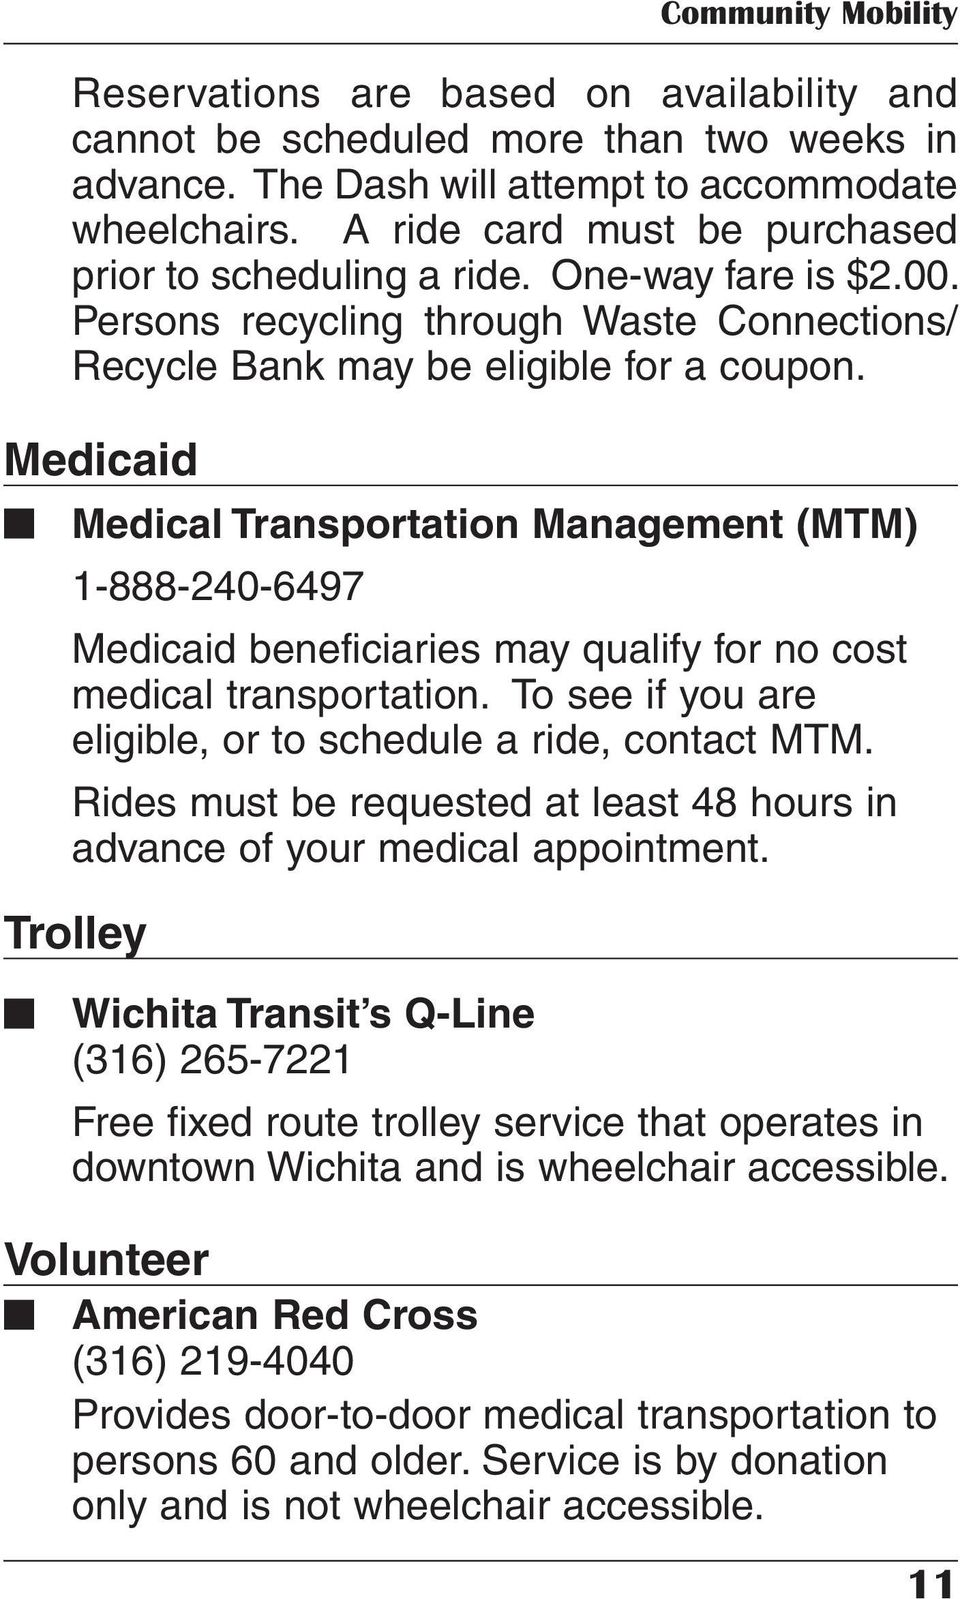 Medicaid Medical Transportation Management (MTM) 1-888-240-6497 Medicaid beneficiaries may qualify for no cost medical transportation. To see if you are eligible, or to schedule a ride, contact MTM.